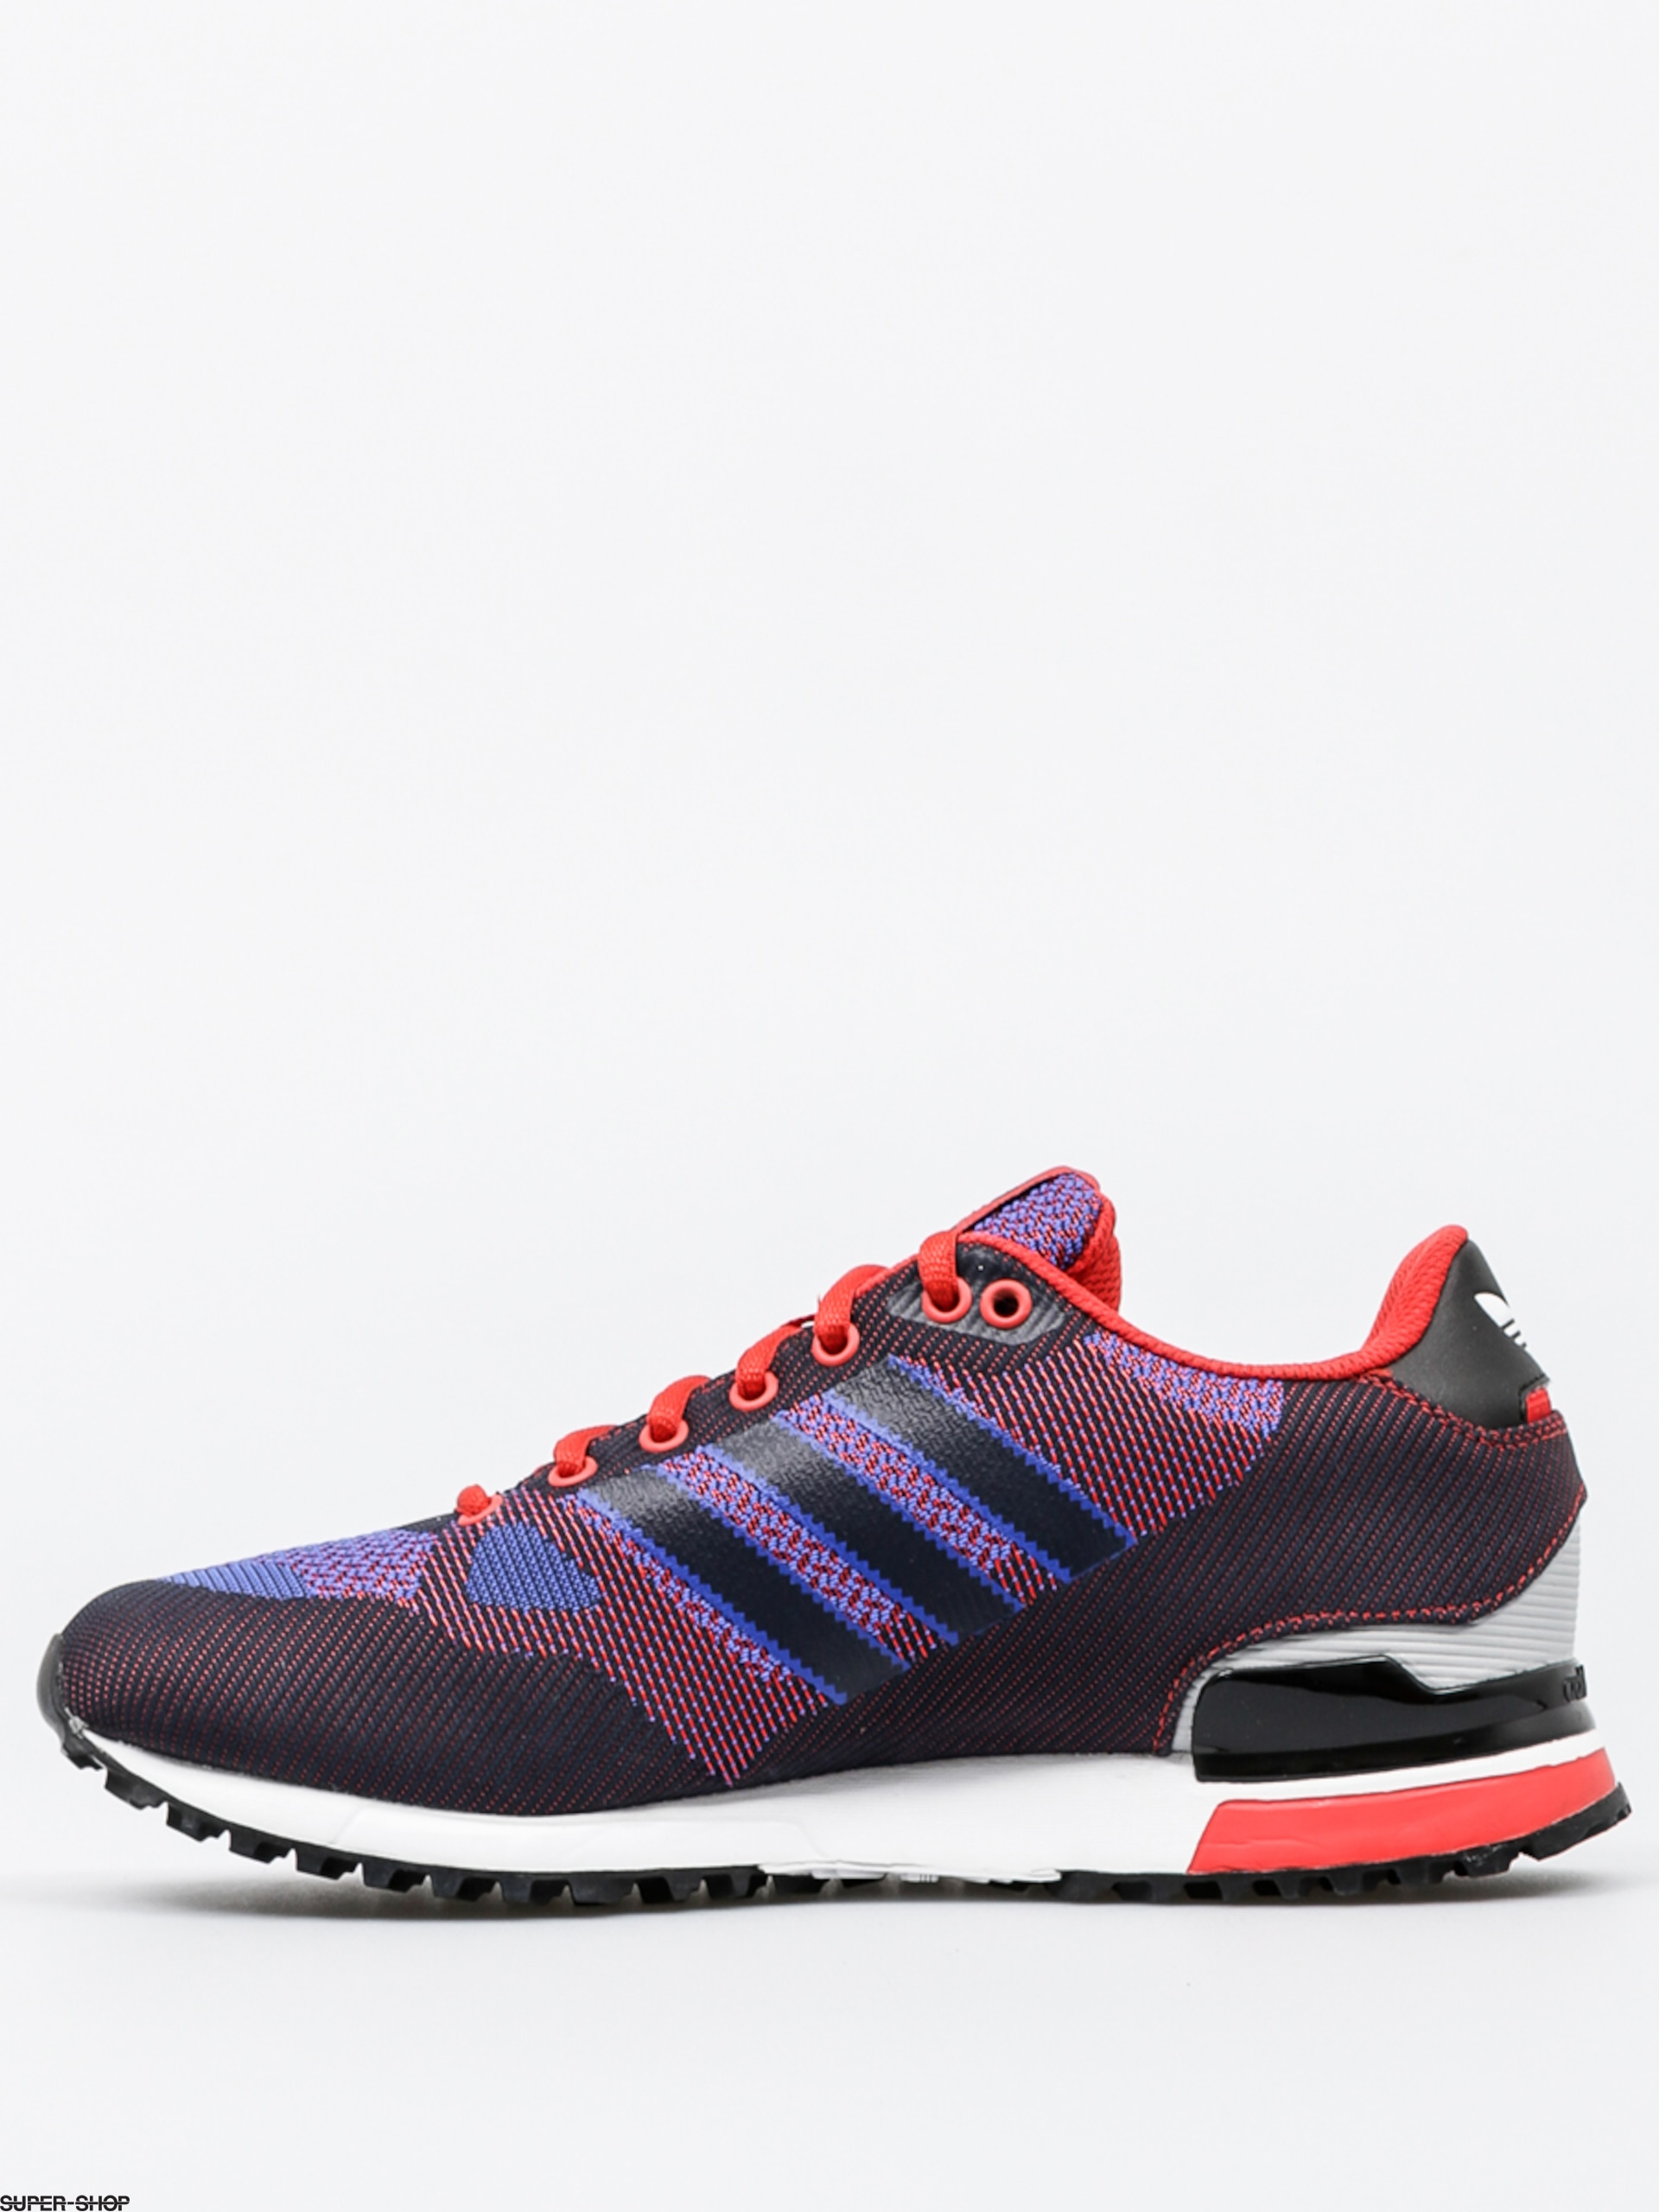 detailed look be837 a02bd netherlands adidas zx 700 g96513 c55ad ef3c9